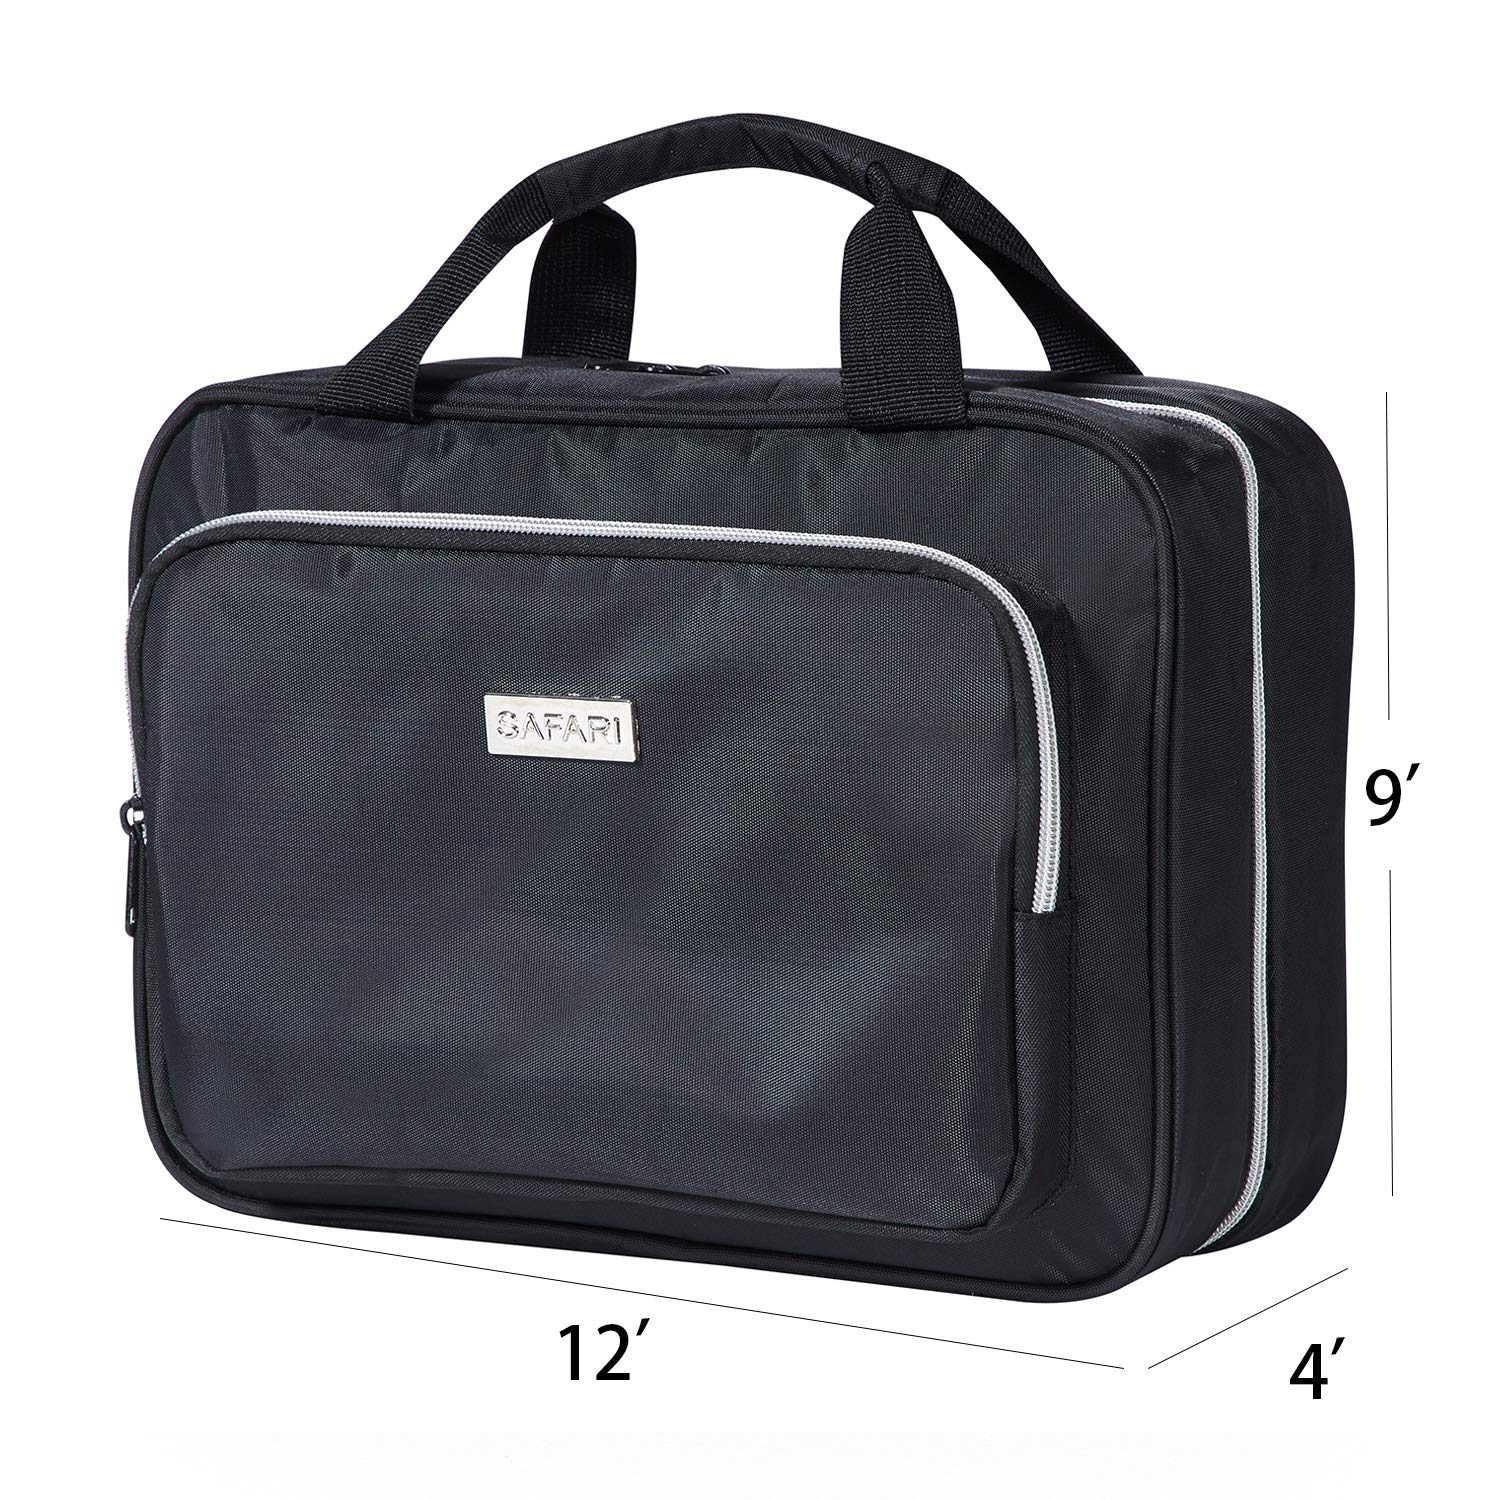 Black Comes with Drawstring Bag The Perfect Gift SAFARI Travel Bags - Durable Waterproof Nylon Organizer with Clear Compartments and Detatchable Pouch Large Hanging Travel Toiletry Bag for Men and Women by SAFARI